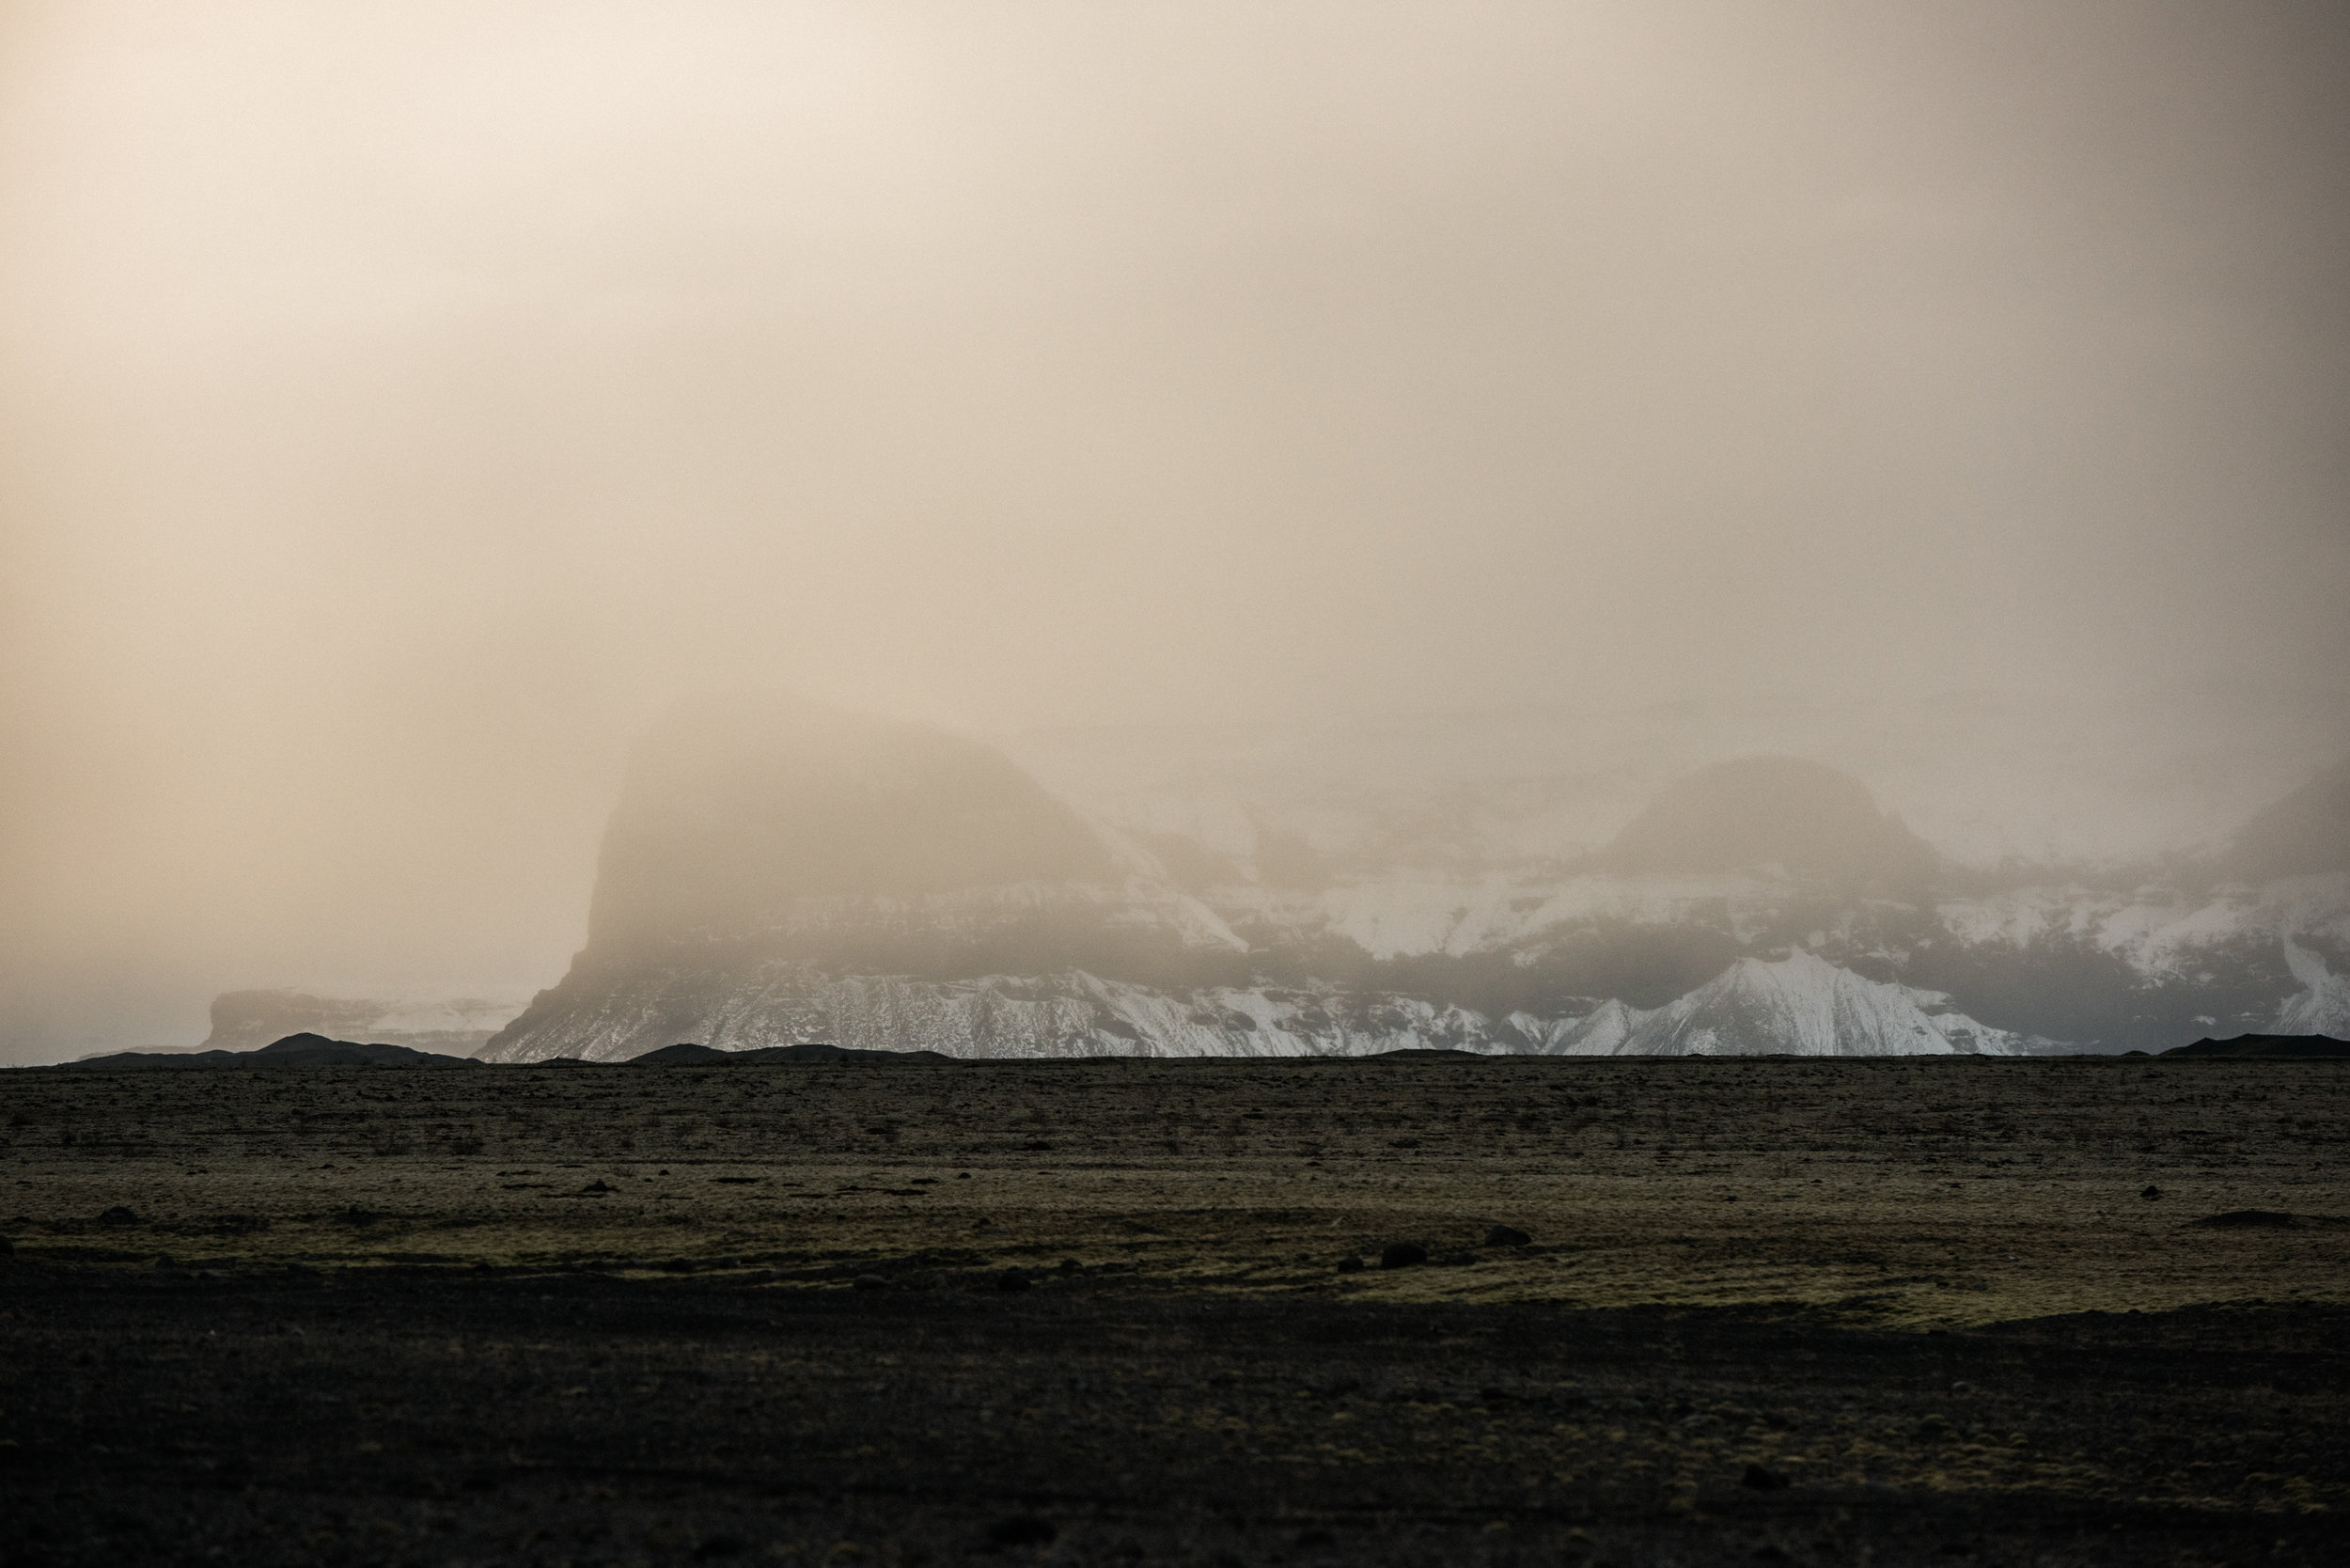 ICELAND_WOMAN_PHOTOGRAPHER_TARASHUPE_OUTDOOR_PHOTOGRAPHY_125.jpg